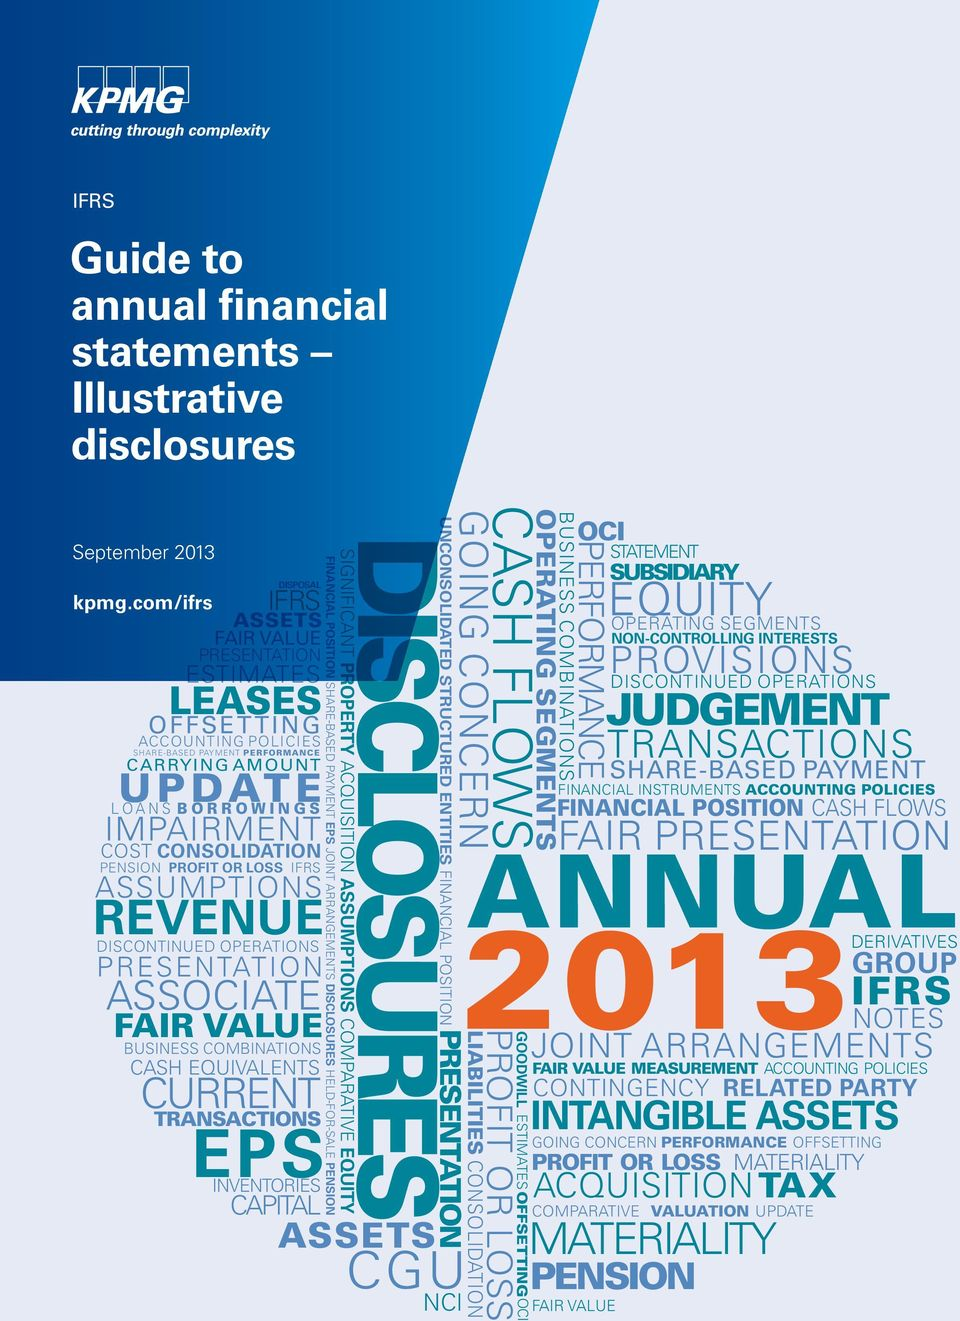 disclosures September 2013 kpmg.